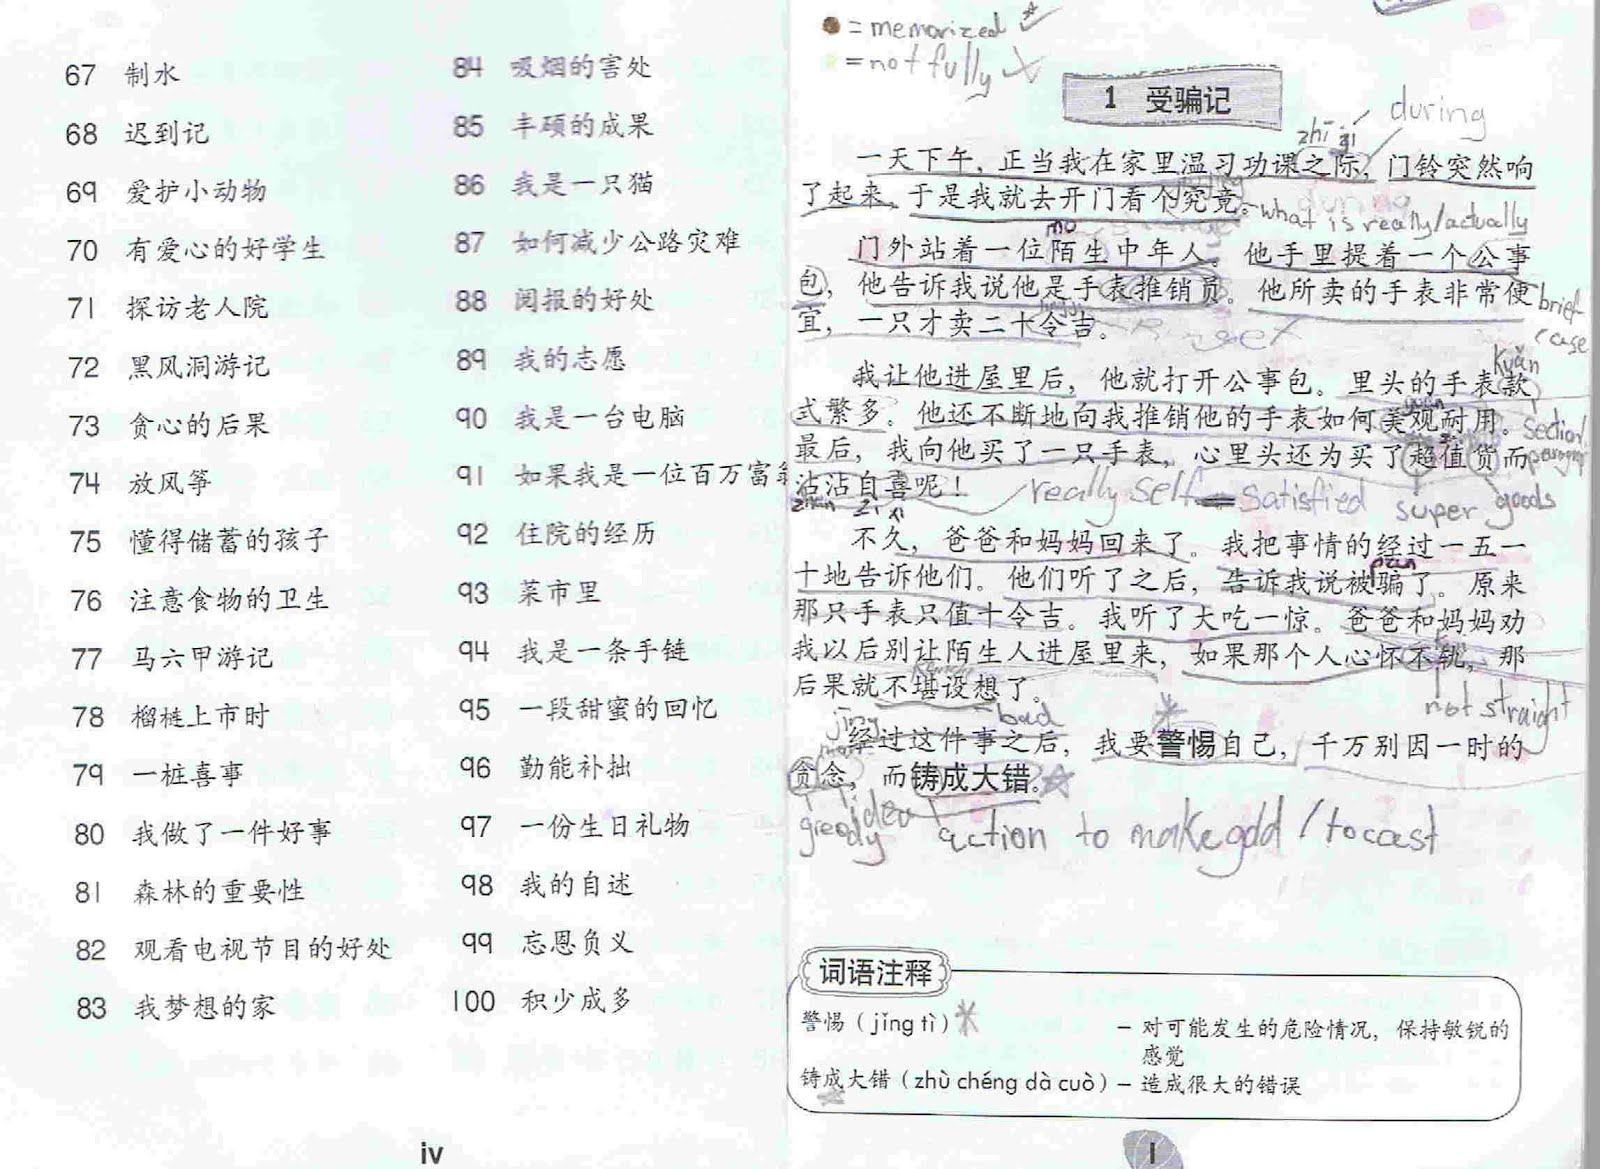 002 Essays On Reading Chinese Essay Sample And Learning Writing Competition Singapore Ccf23082012 00001 New Year Language Service Wedding Paper Structure Amazing Art Topics Vce Formats Sheet Full